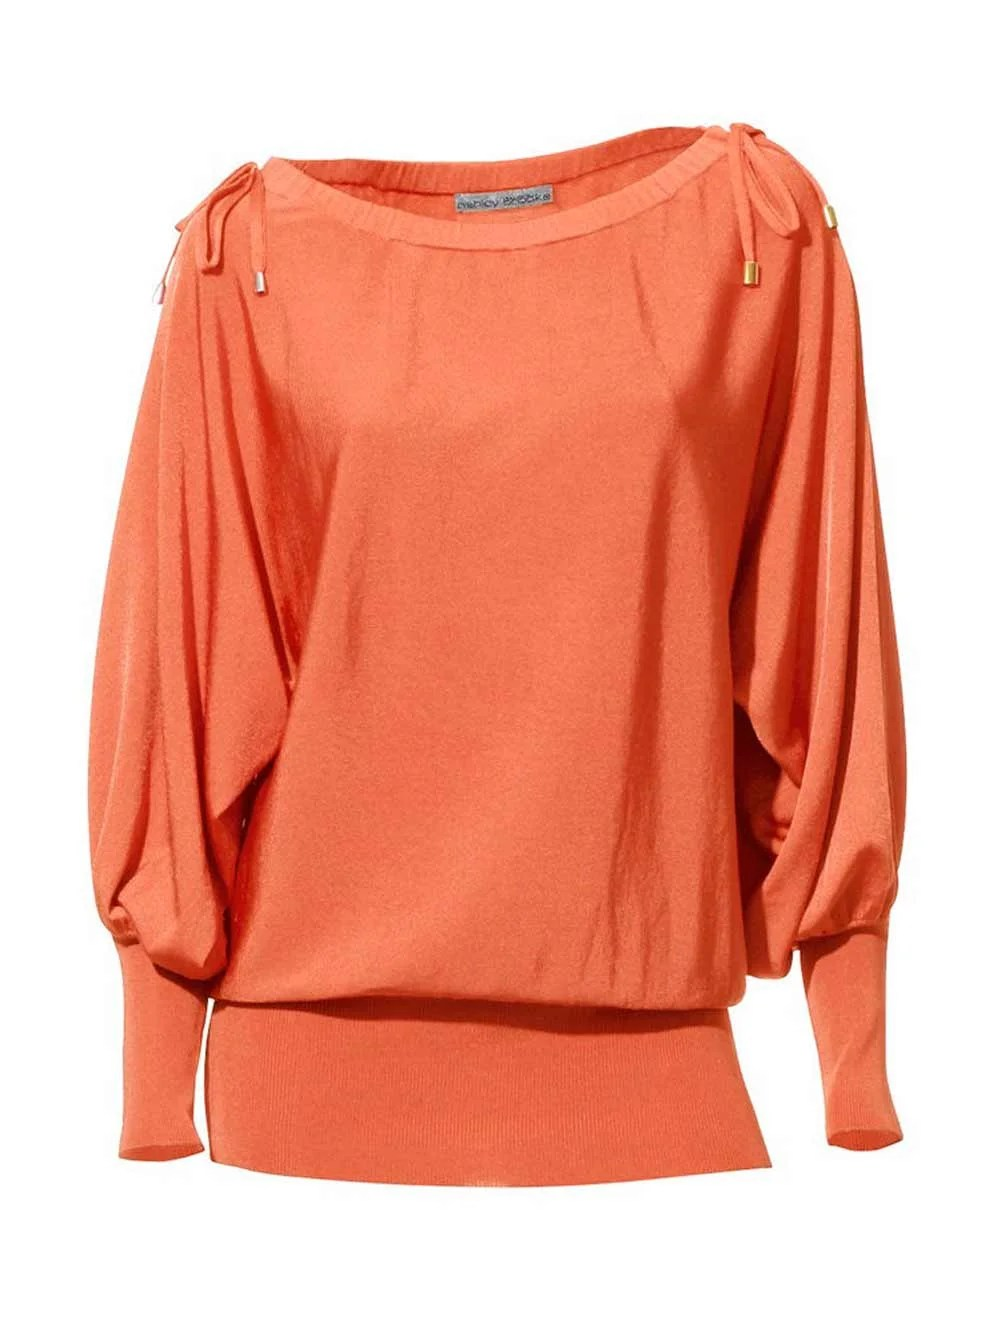 071.142a ASHLEY BROOKE Damen Designer-Pullover Orange Fledermausärmel Schnürung Oversize